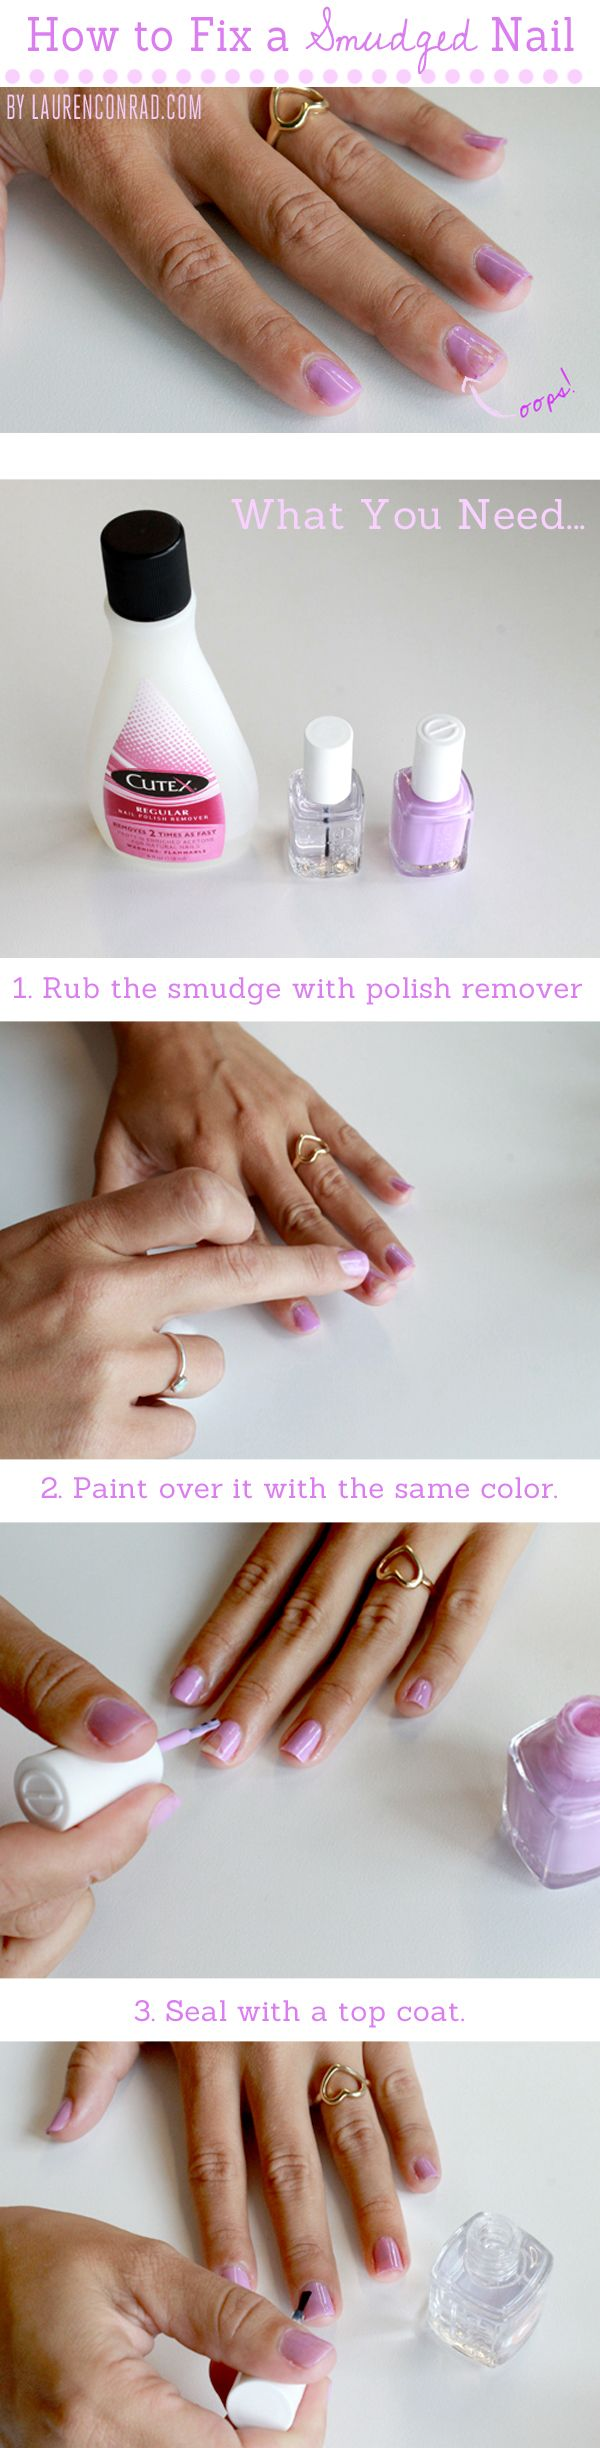 I need this! I can never do my nails without smudging them. 3 steps for fixing a smudged manicure